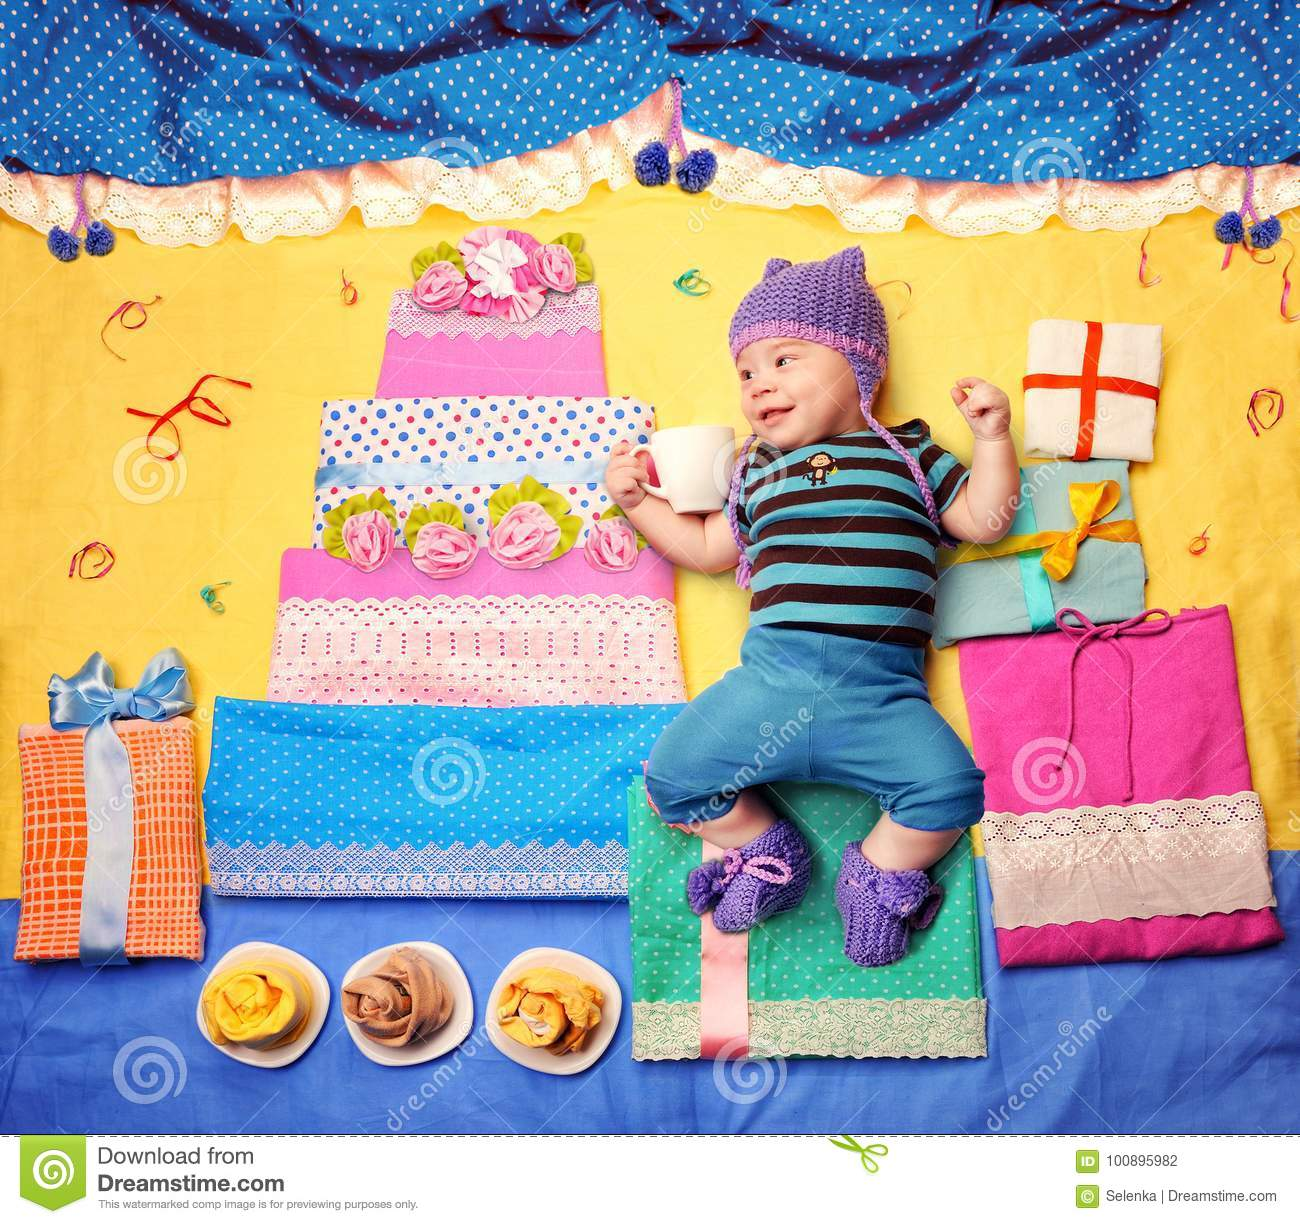 Cute Baby Boy Celebrate His First Birthday With Big Cake And Gifts